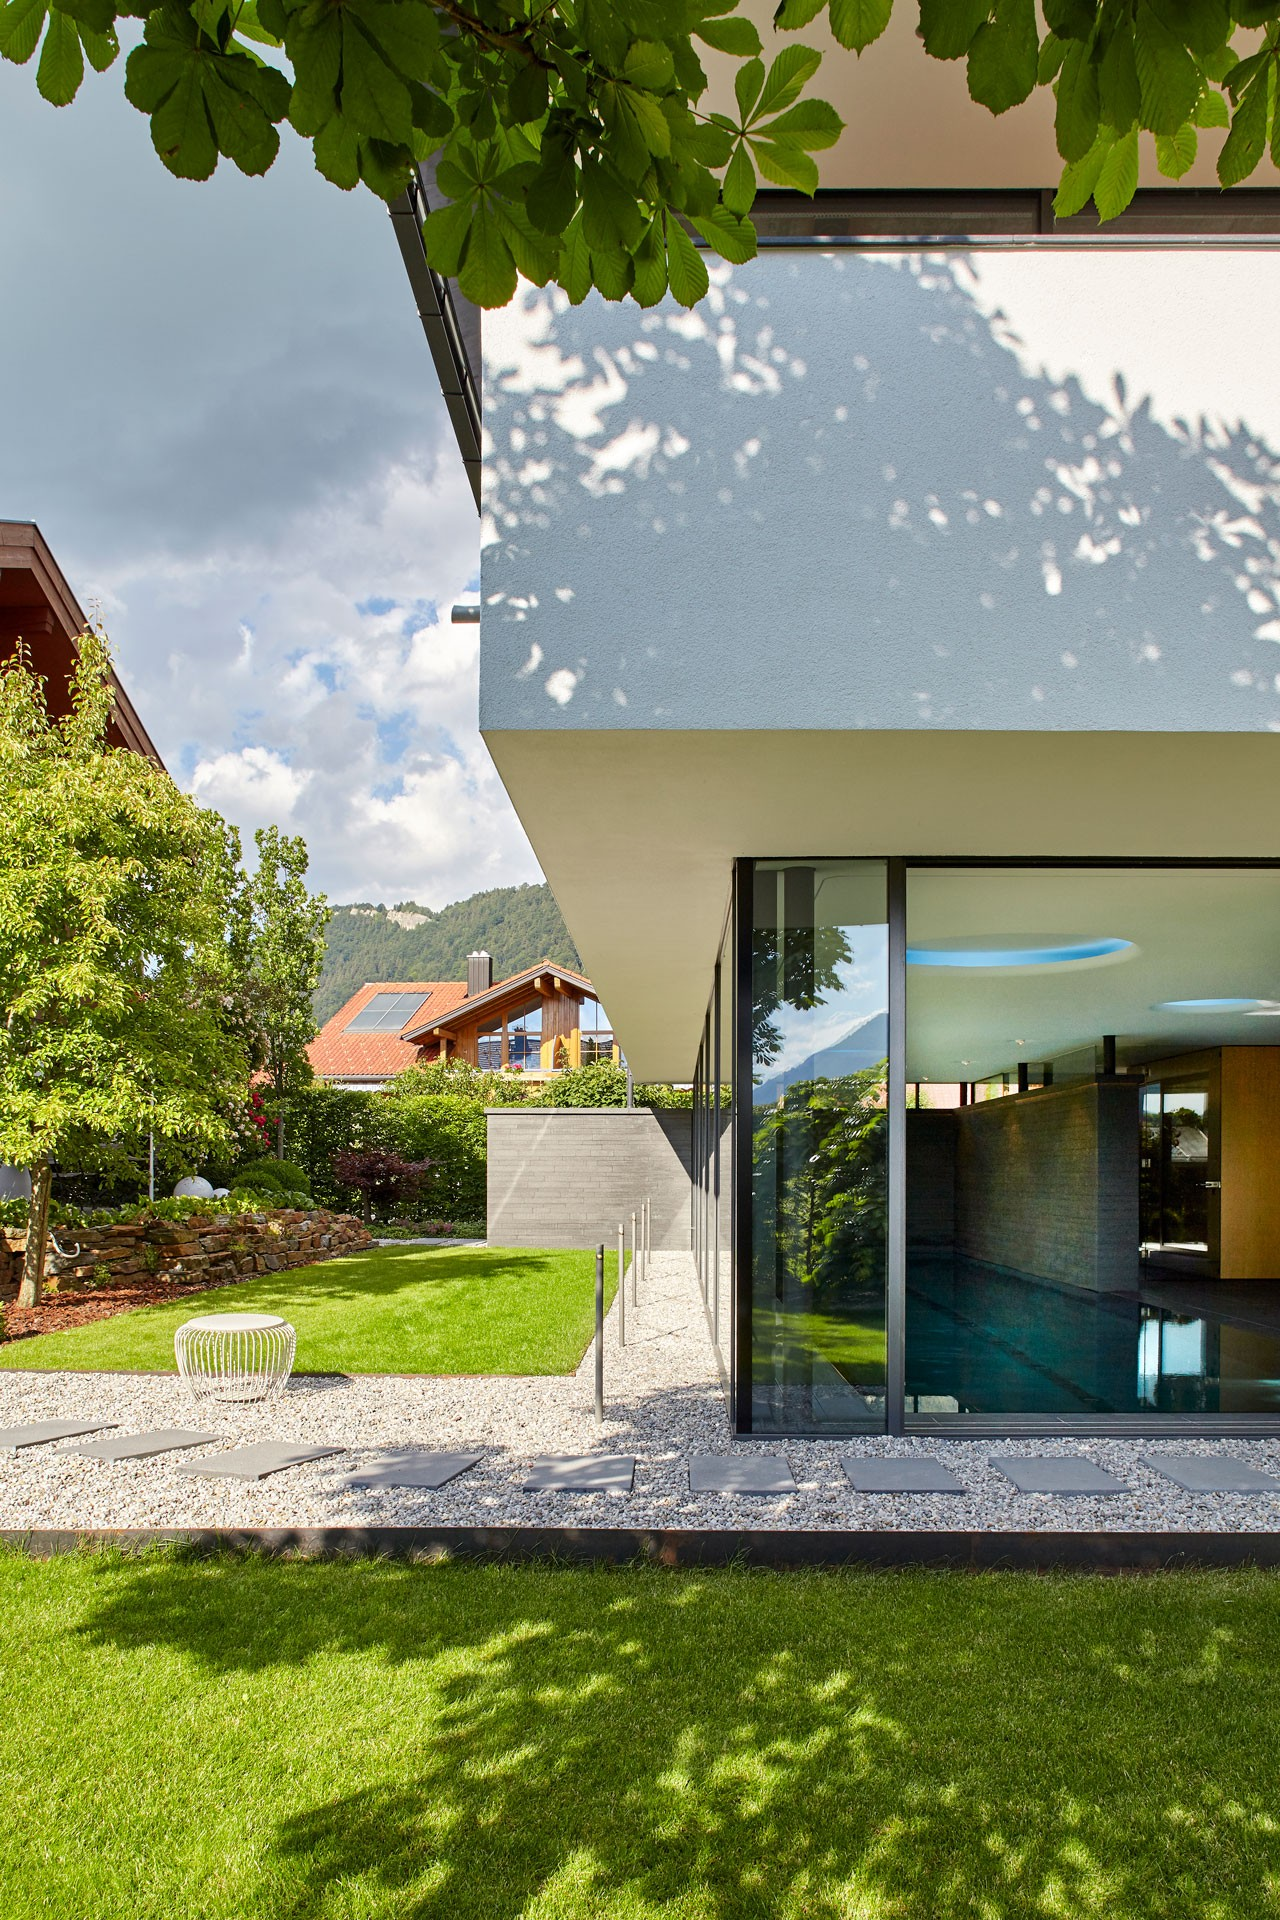 architektur-plus-raum-haus-hm-03